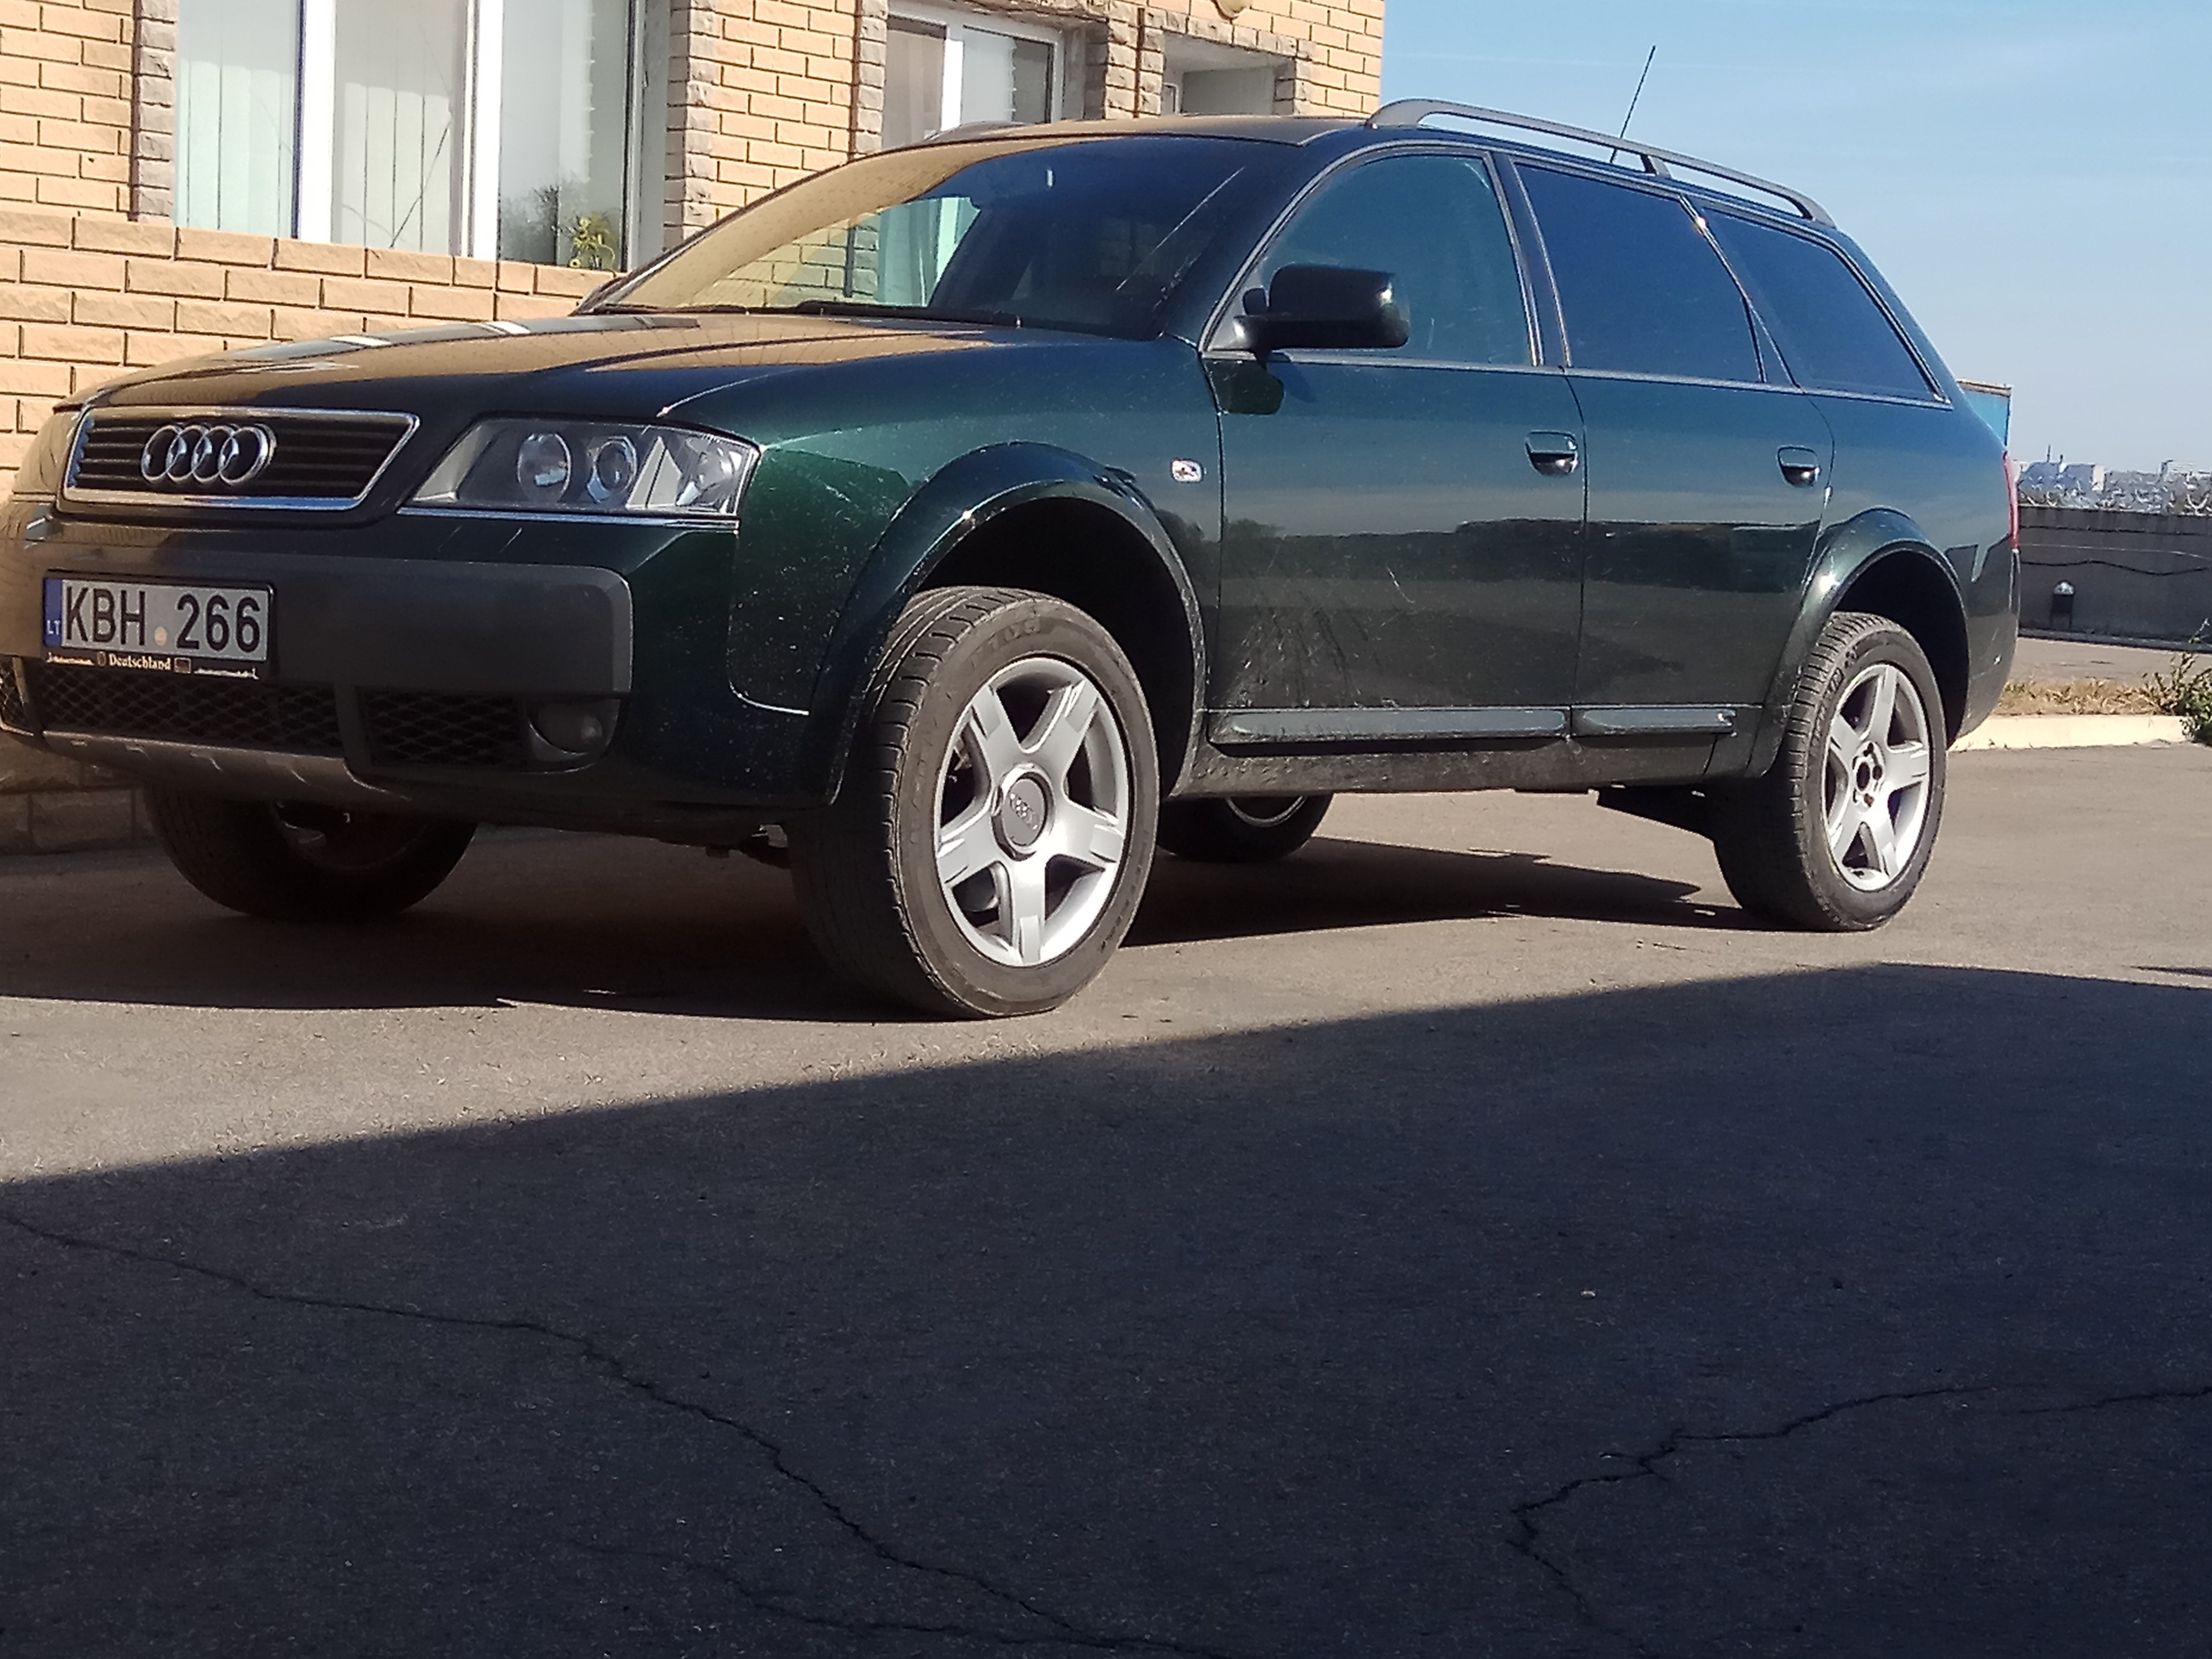 Audi A6 Allroad I (C5) 2.5d AT/MT (180 л.с.) 4WD